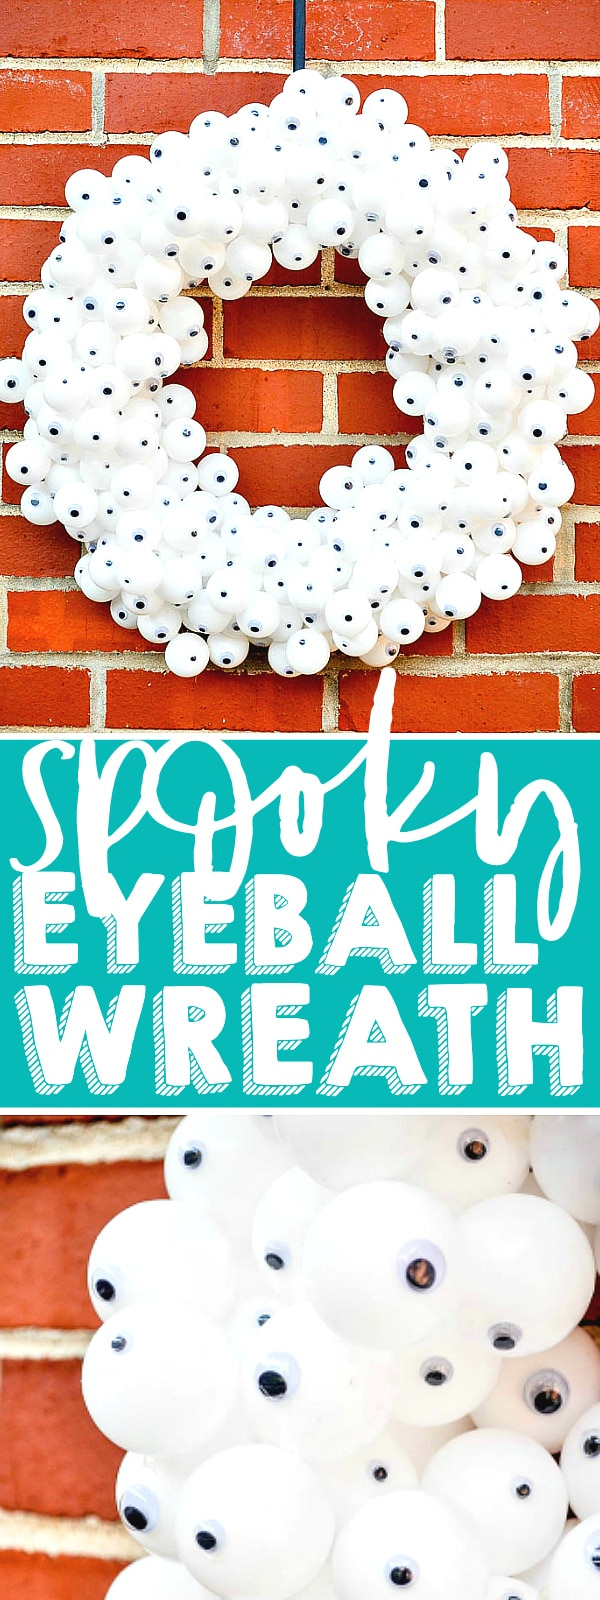 Create a fun and spooky Eyeball Wreath for your DIY Halloween decor! Made with inexpensive products and a lot of hot glue, it's an easy Halloween Wreath your trick or treaters will love! | The Love Nerds #HALLOWEENDECOR #HALLOWEENCRAFT #WREATHIDEA